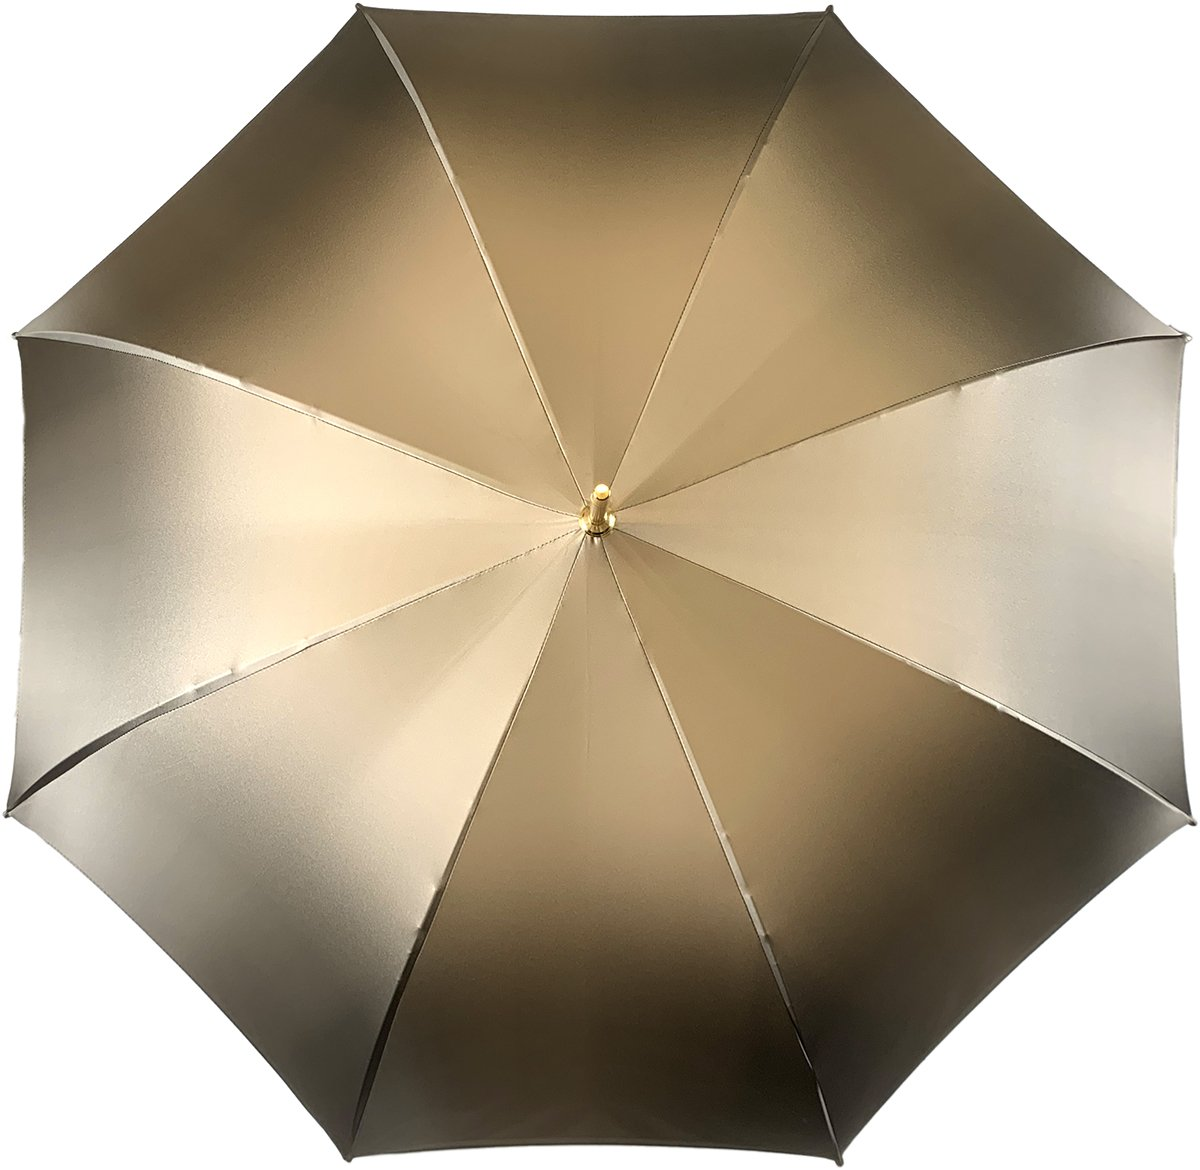 Double Cloth Umbrella In A Fantastic Chocolate Color - IL MARCHESATO LUXURY UMBRELLAS, CANES AND SHOEHORNS